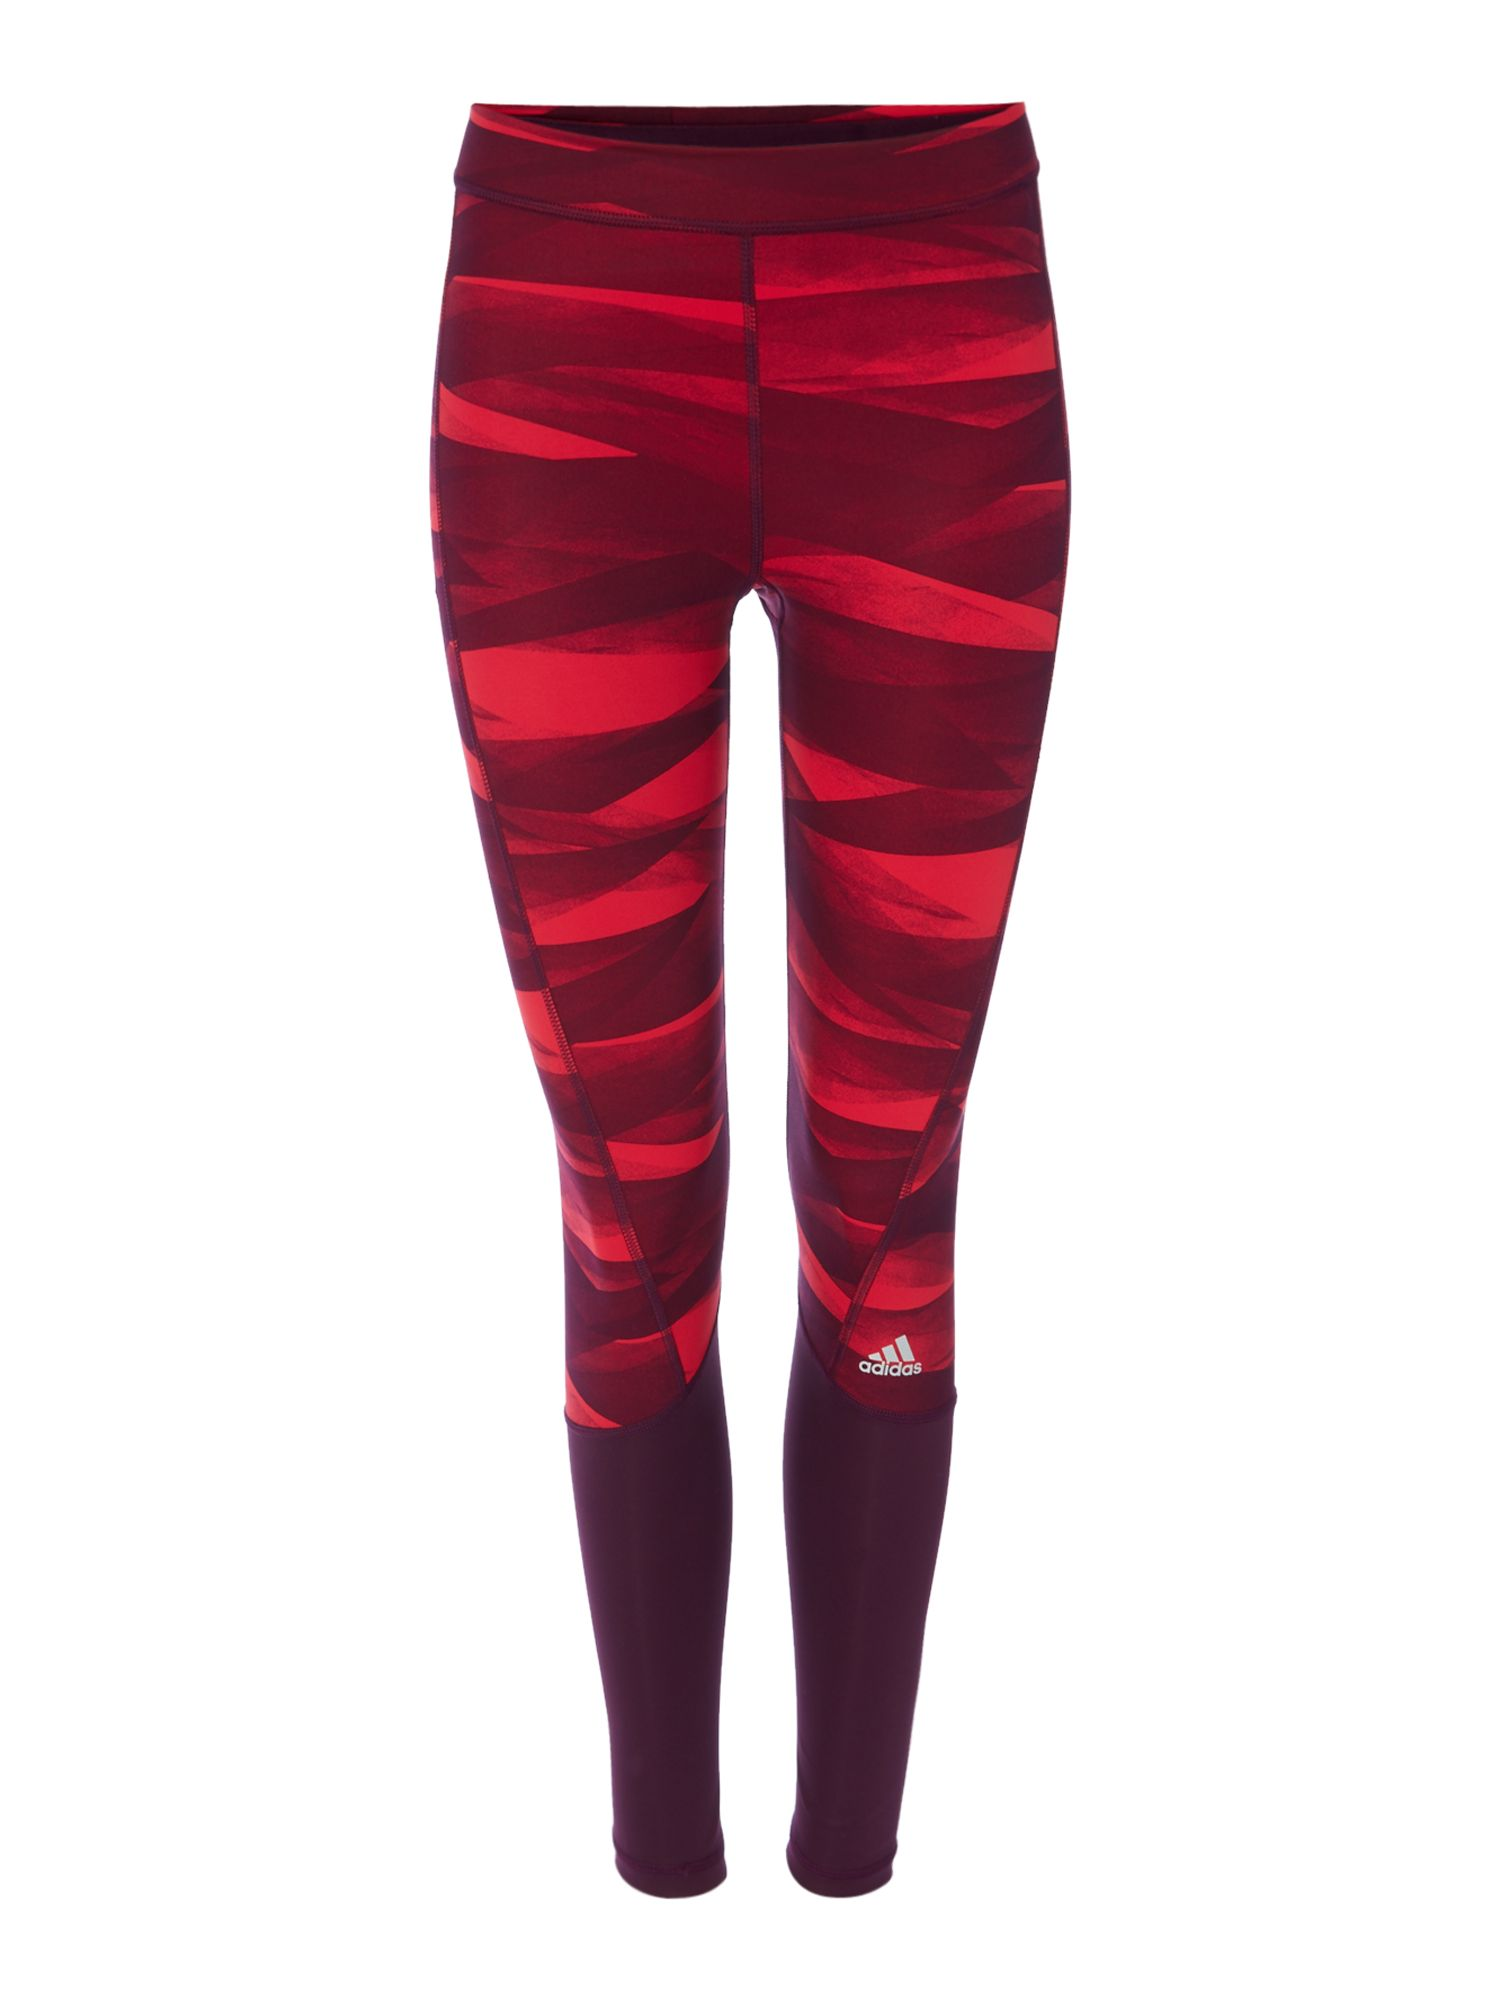 Adidas Patterned legging, Red